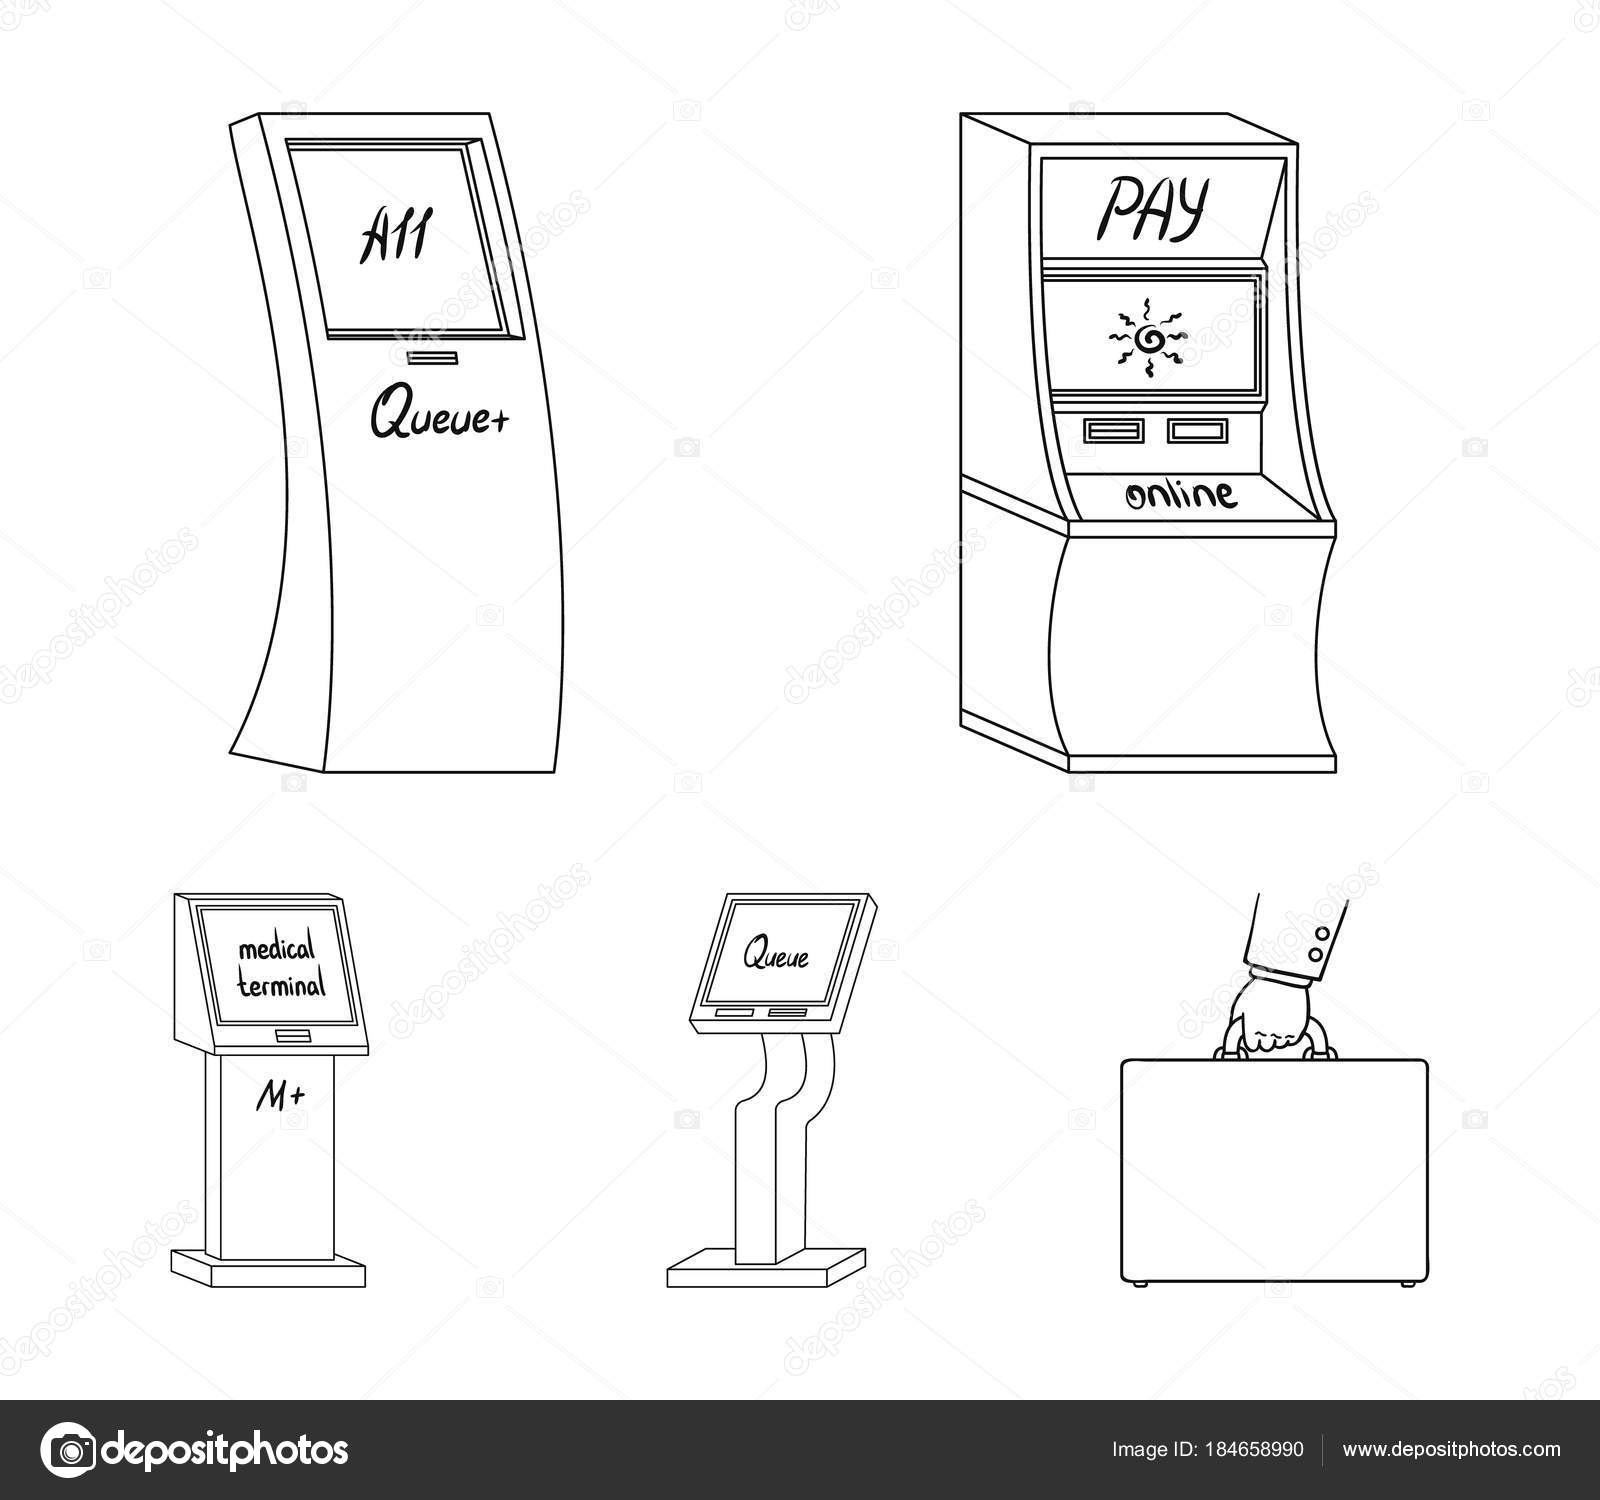 Medical terminal atm for paymentapparatus for queue terminals set medical terminal atm for paymentapparatus for queue terminals set collection icons in outline style isometric vector symbol stock illustration ccuart Images